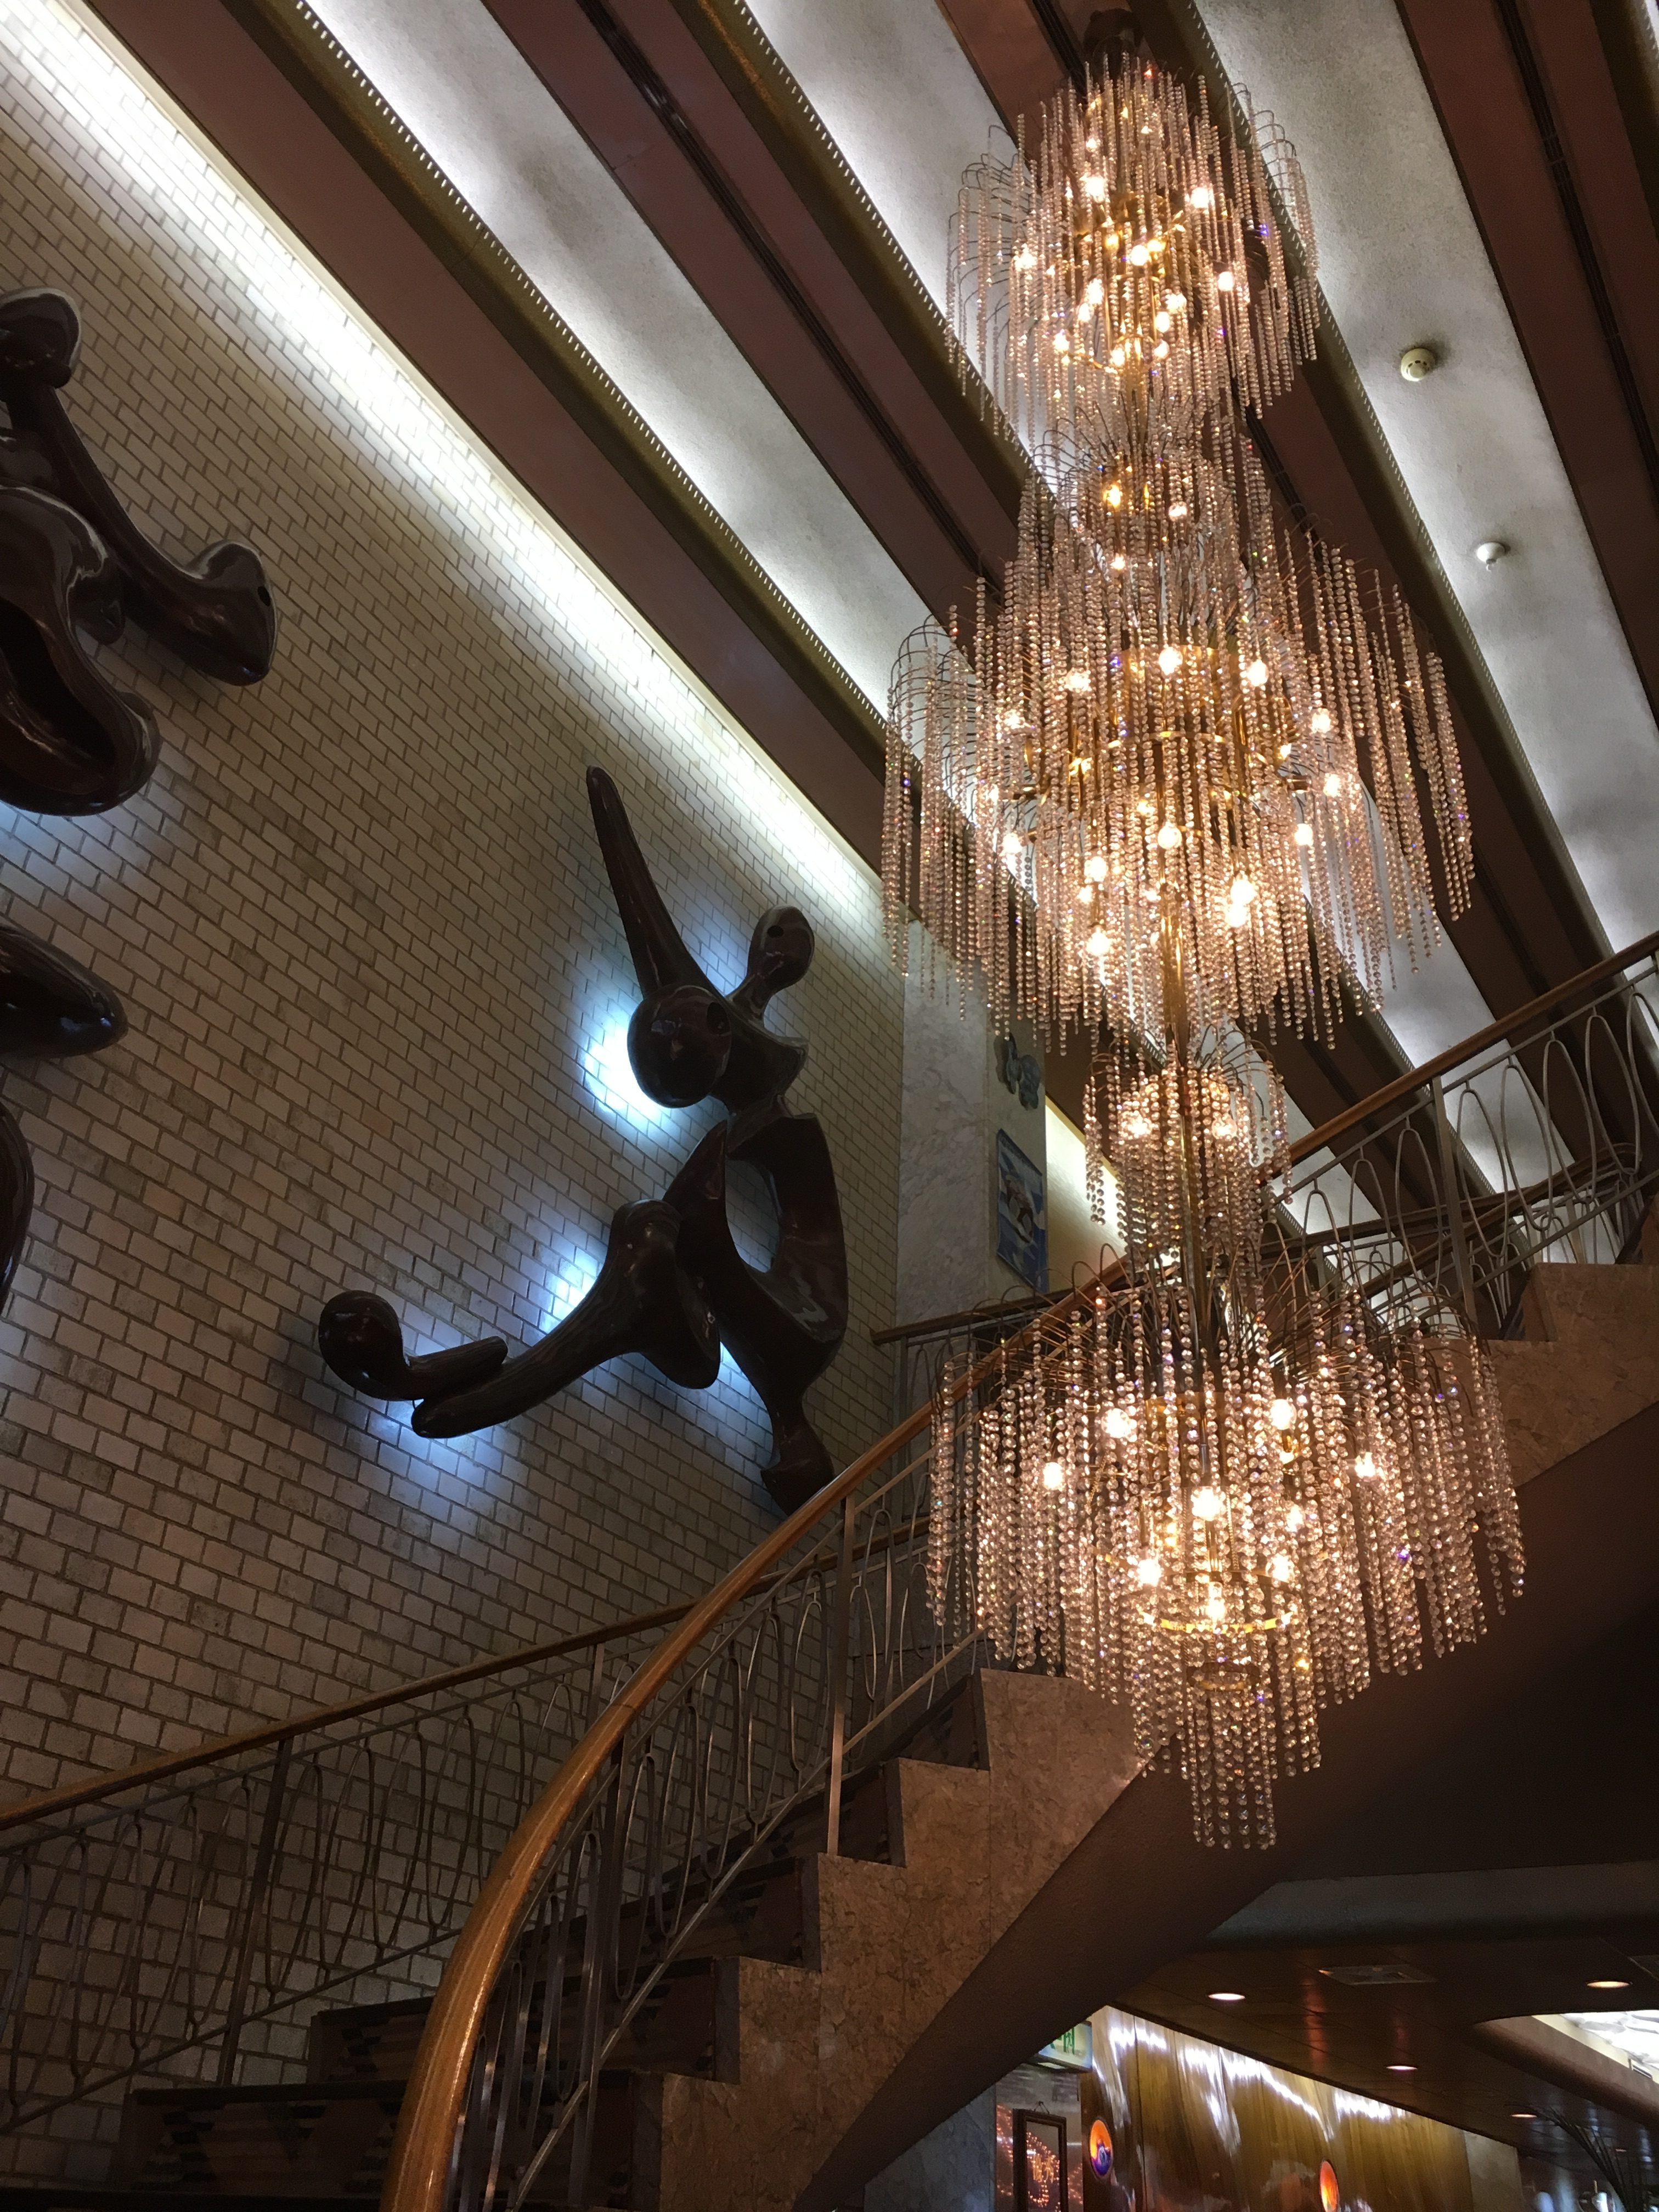 retro style chandelier and spiral stairs in dim cafe